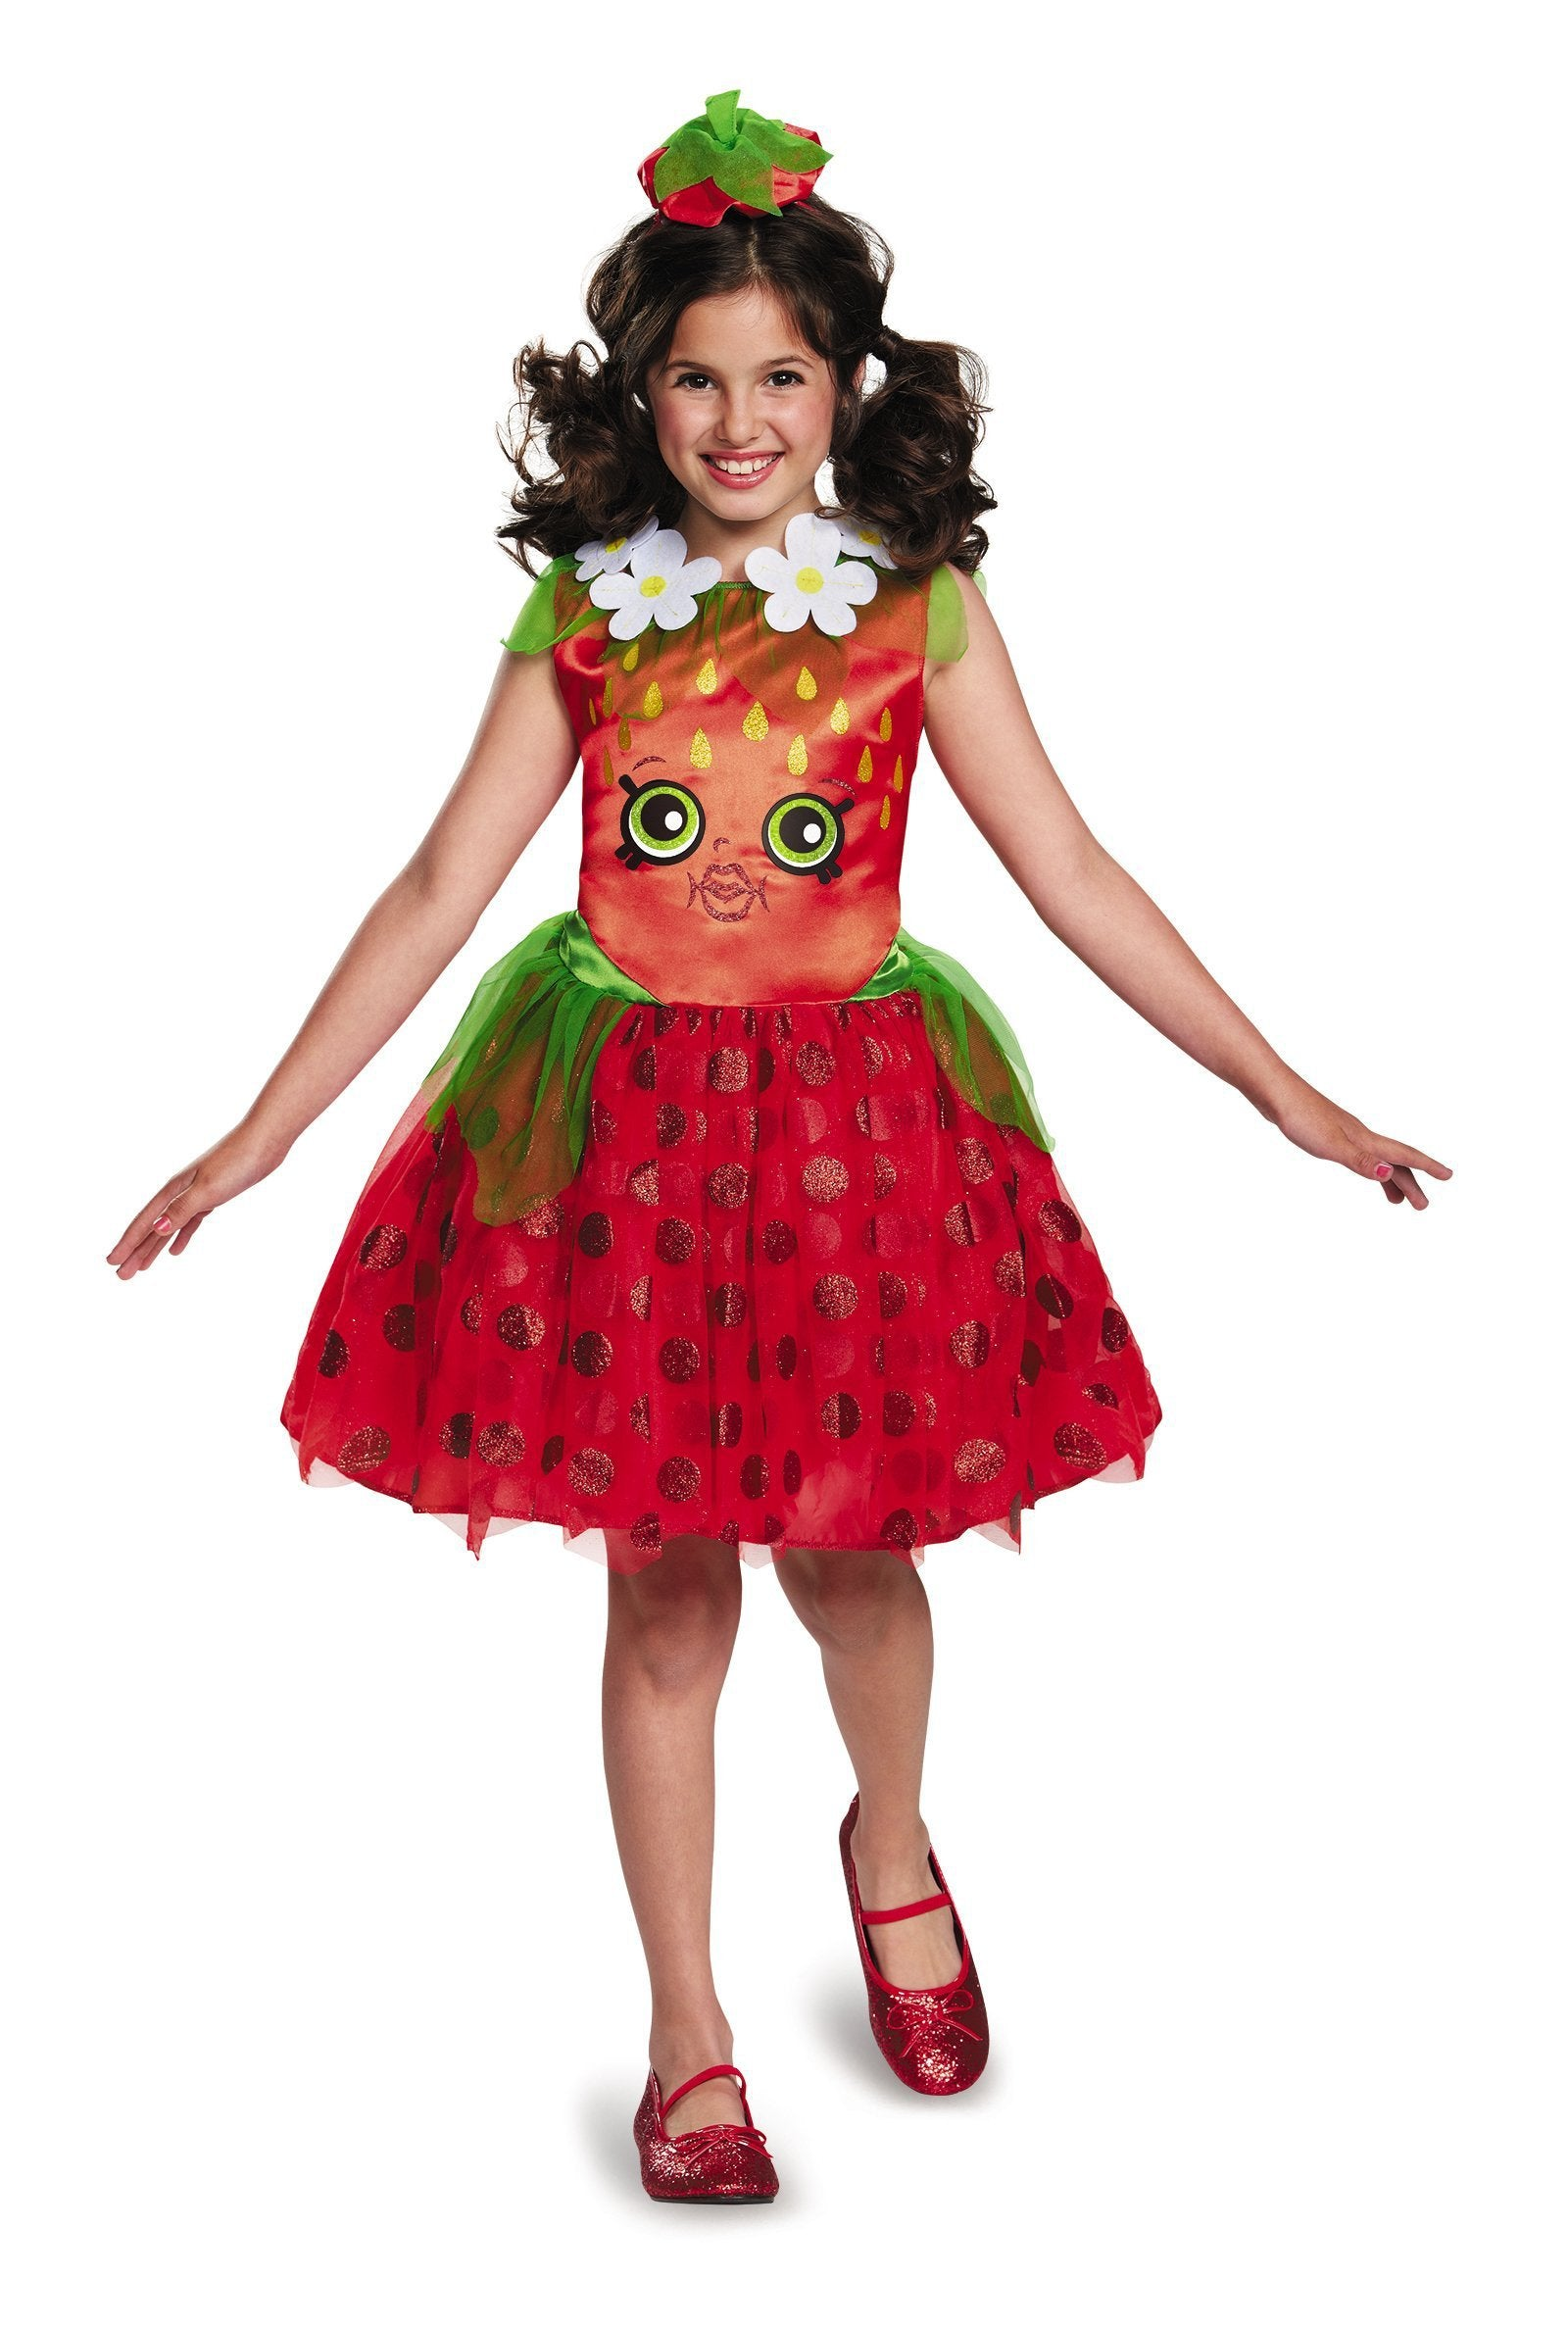 Disguise Costumes Girls Strawberry Kiss Costume - Shopkins